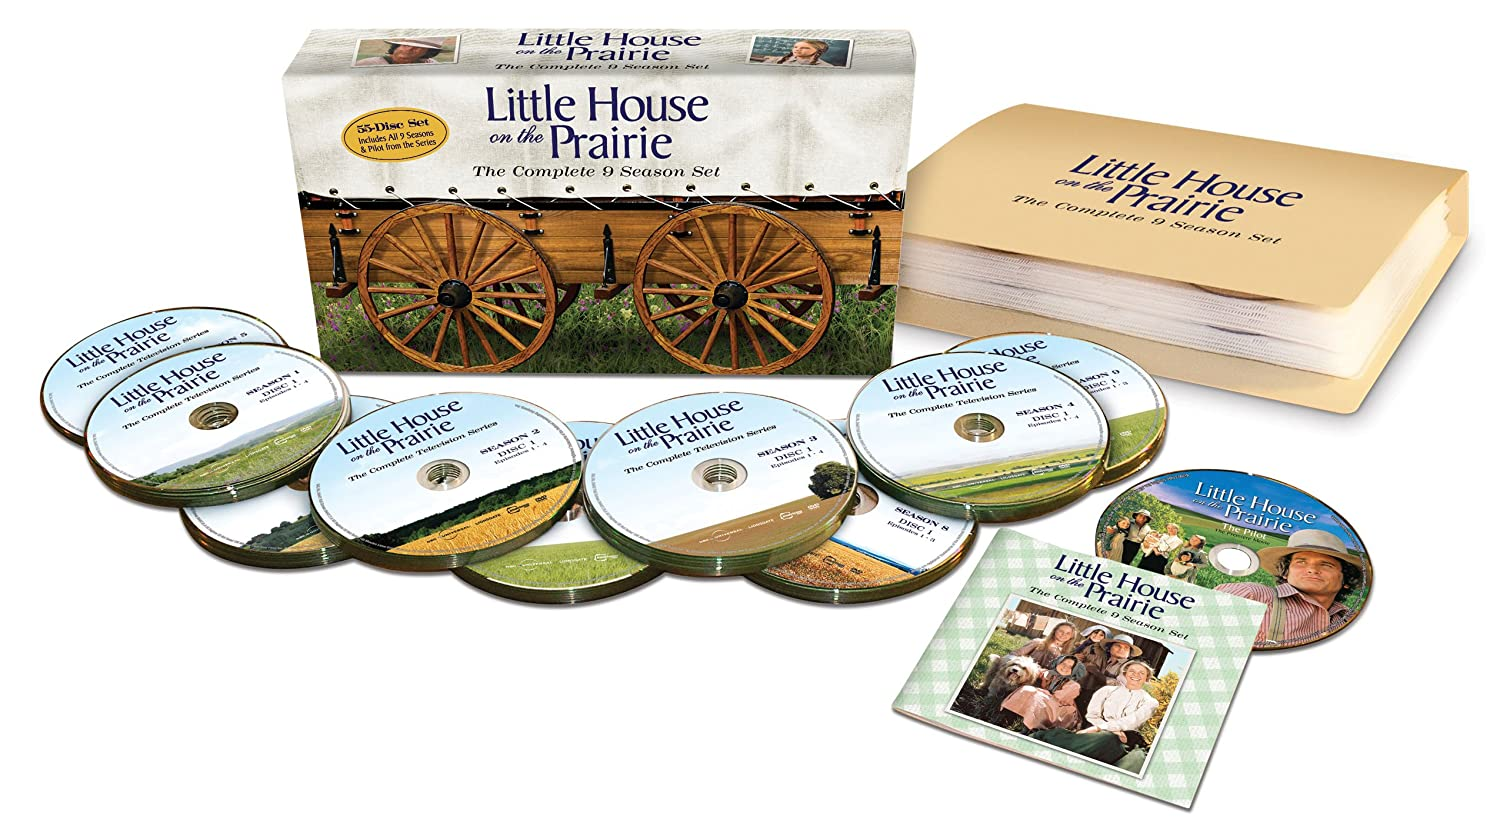 Little House on the Prairie: The Complete Nine-Season Set (Complete Series + Pilot Episode) $86.99